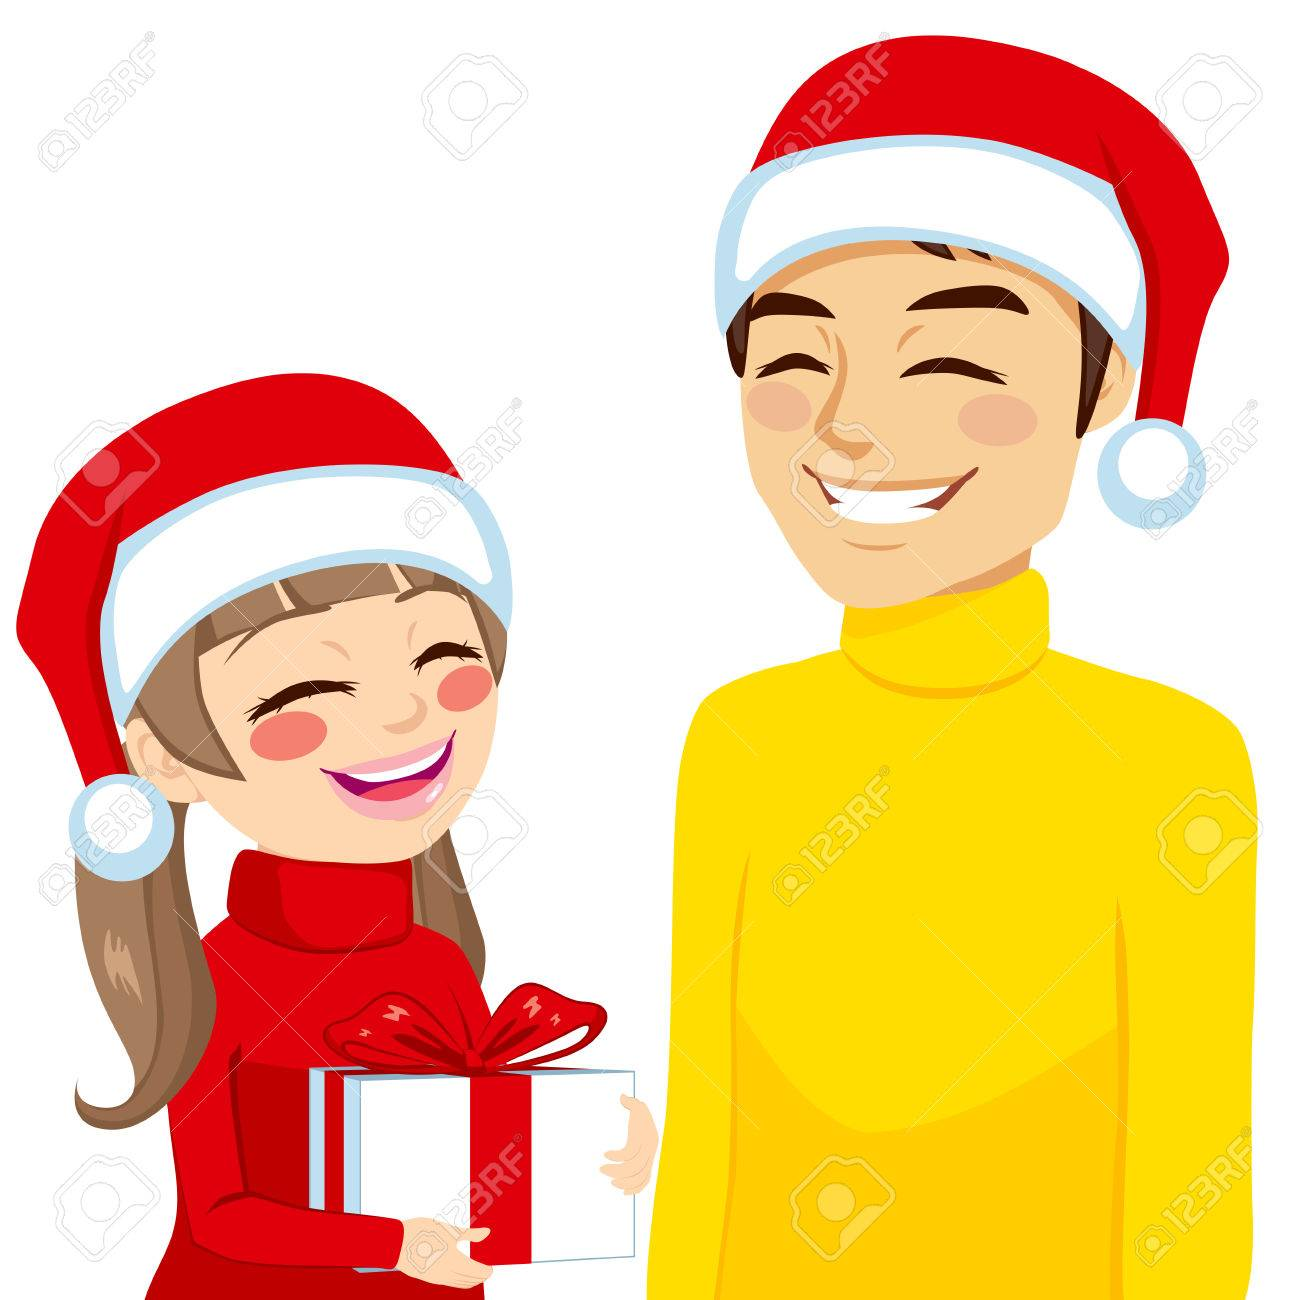 Family Illustration Of Daughter Giving Or Receiving Gift From ...